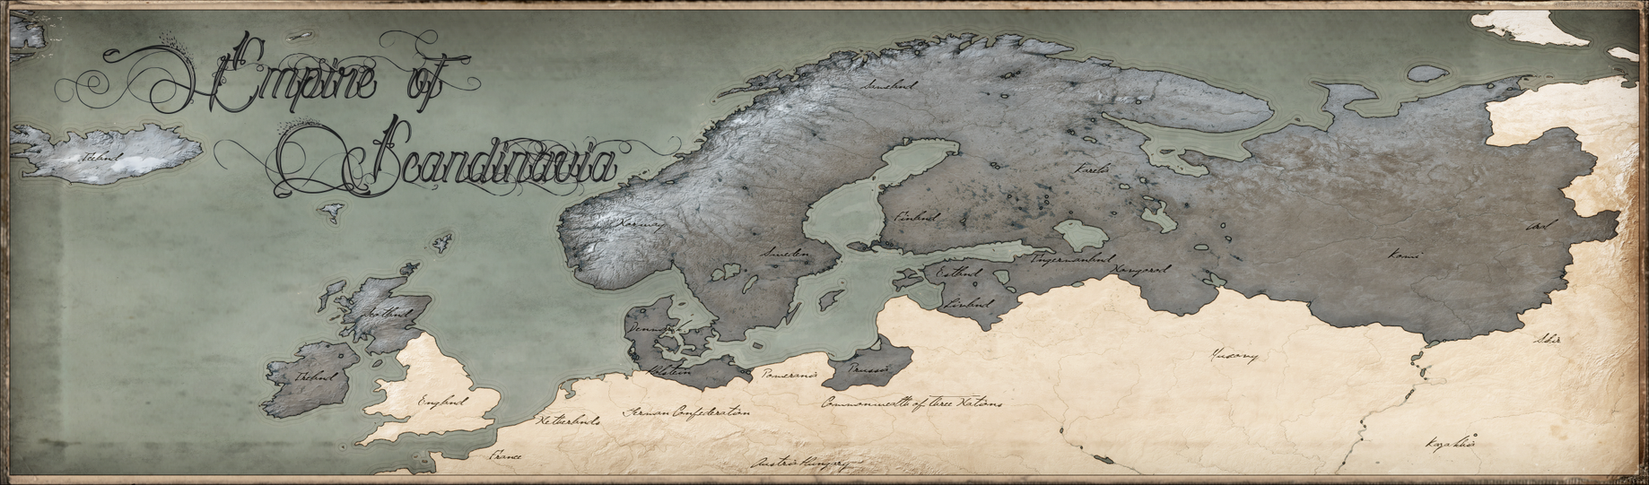 Empire of Scandinavia by GTD-Orion